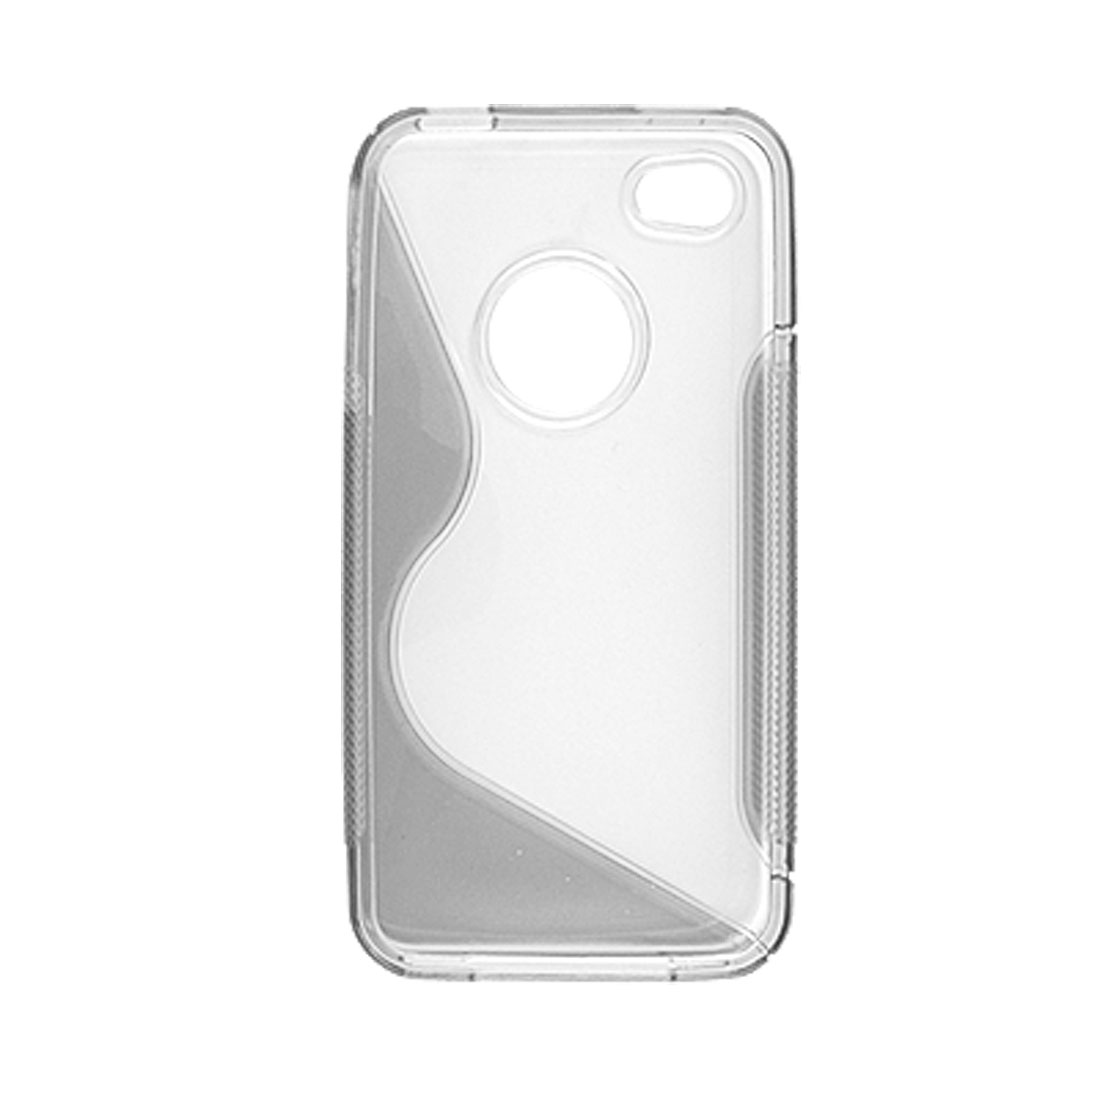 Antislip Side Hard and Soft Plastic Case Clear and Gray for iPhone 4 4G